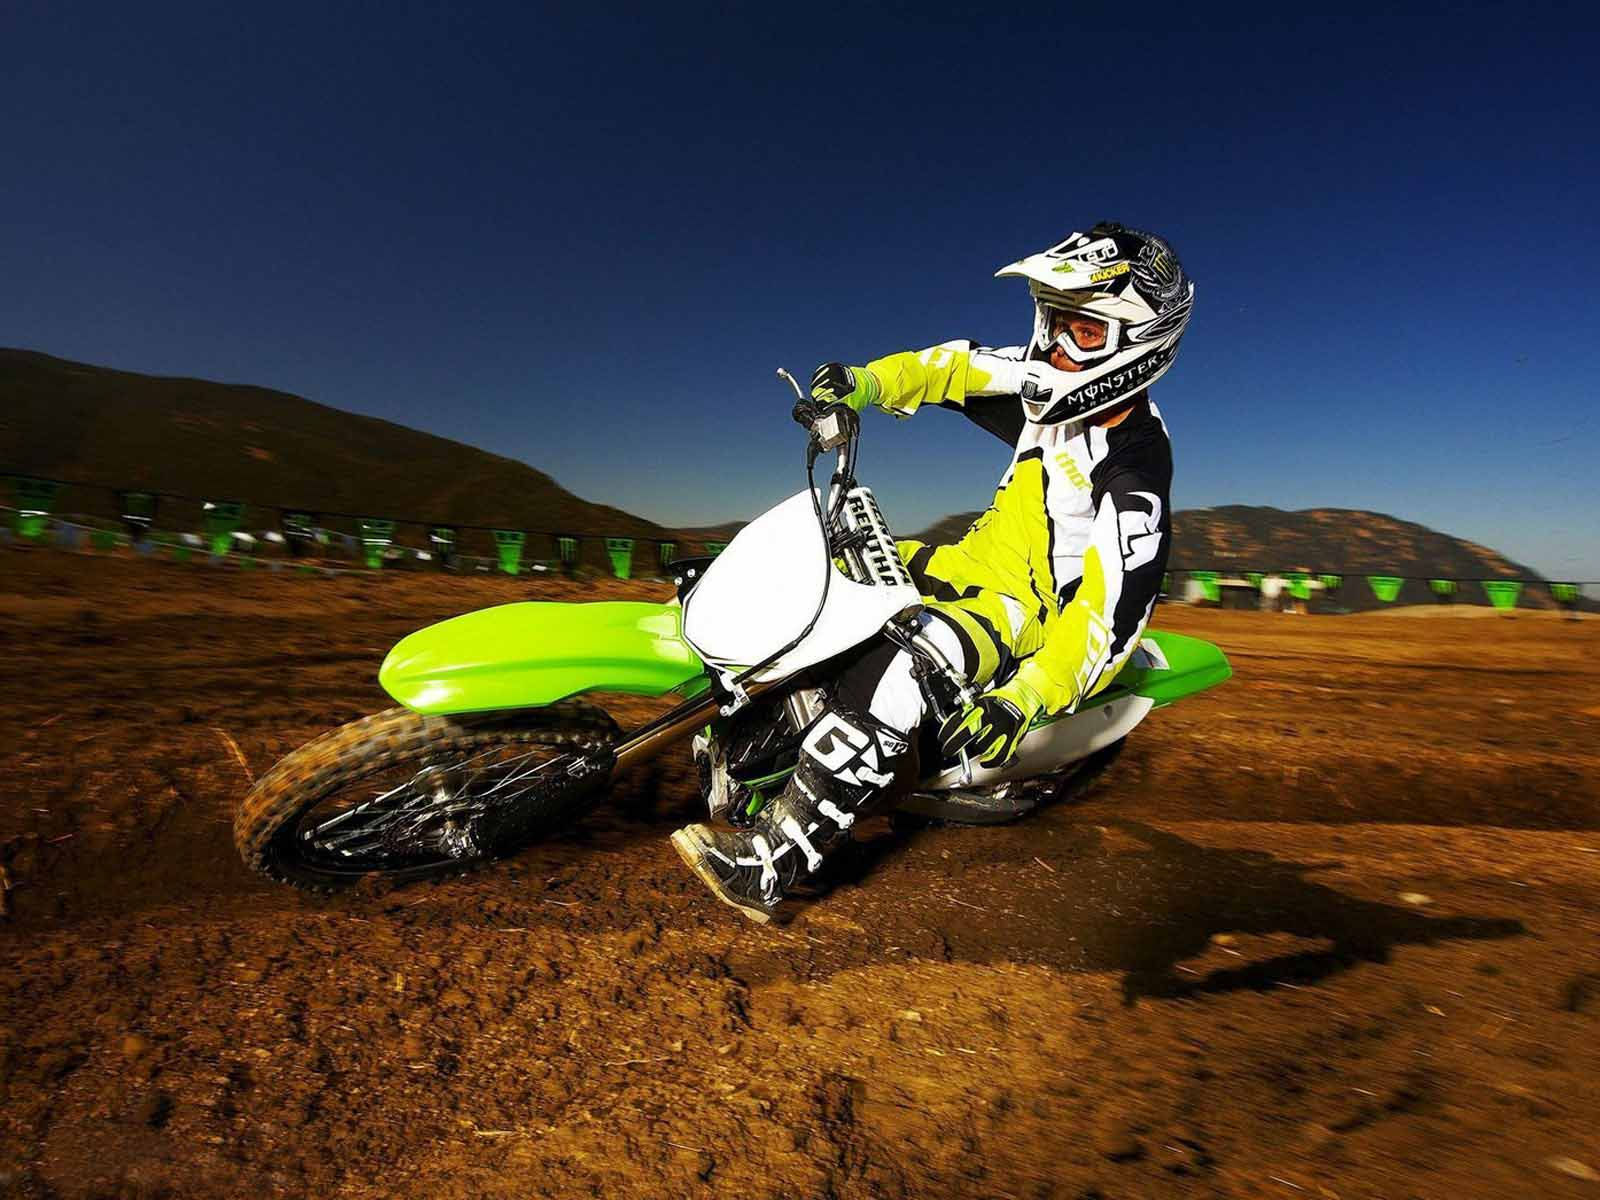 kawasaki dirt bike wallpaper hd wallpapers pics